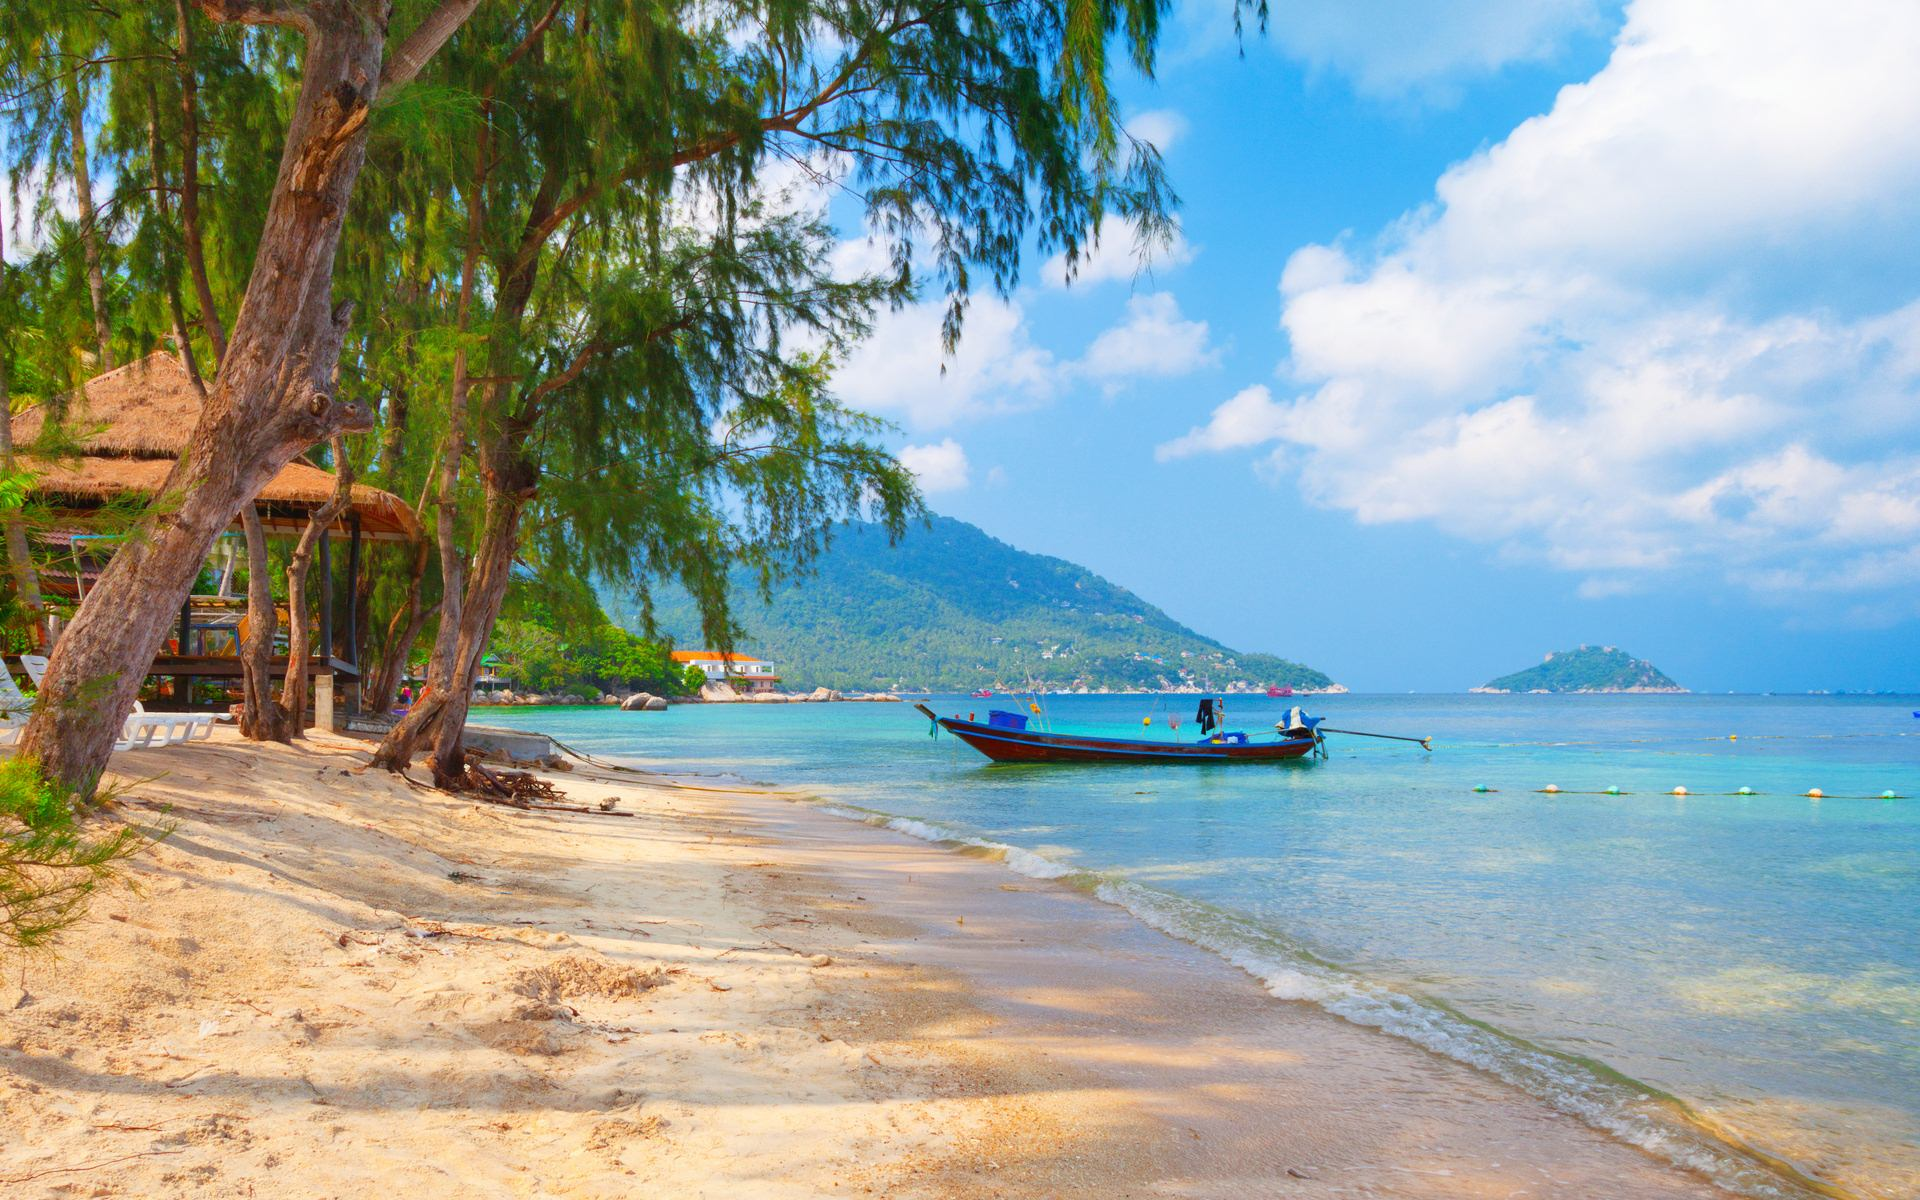 26 Thailand Beach Koh Tao Beach Wallpaper 421 Thailand 1920x1200